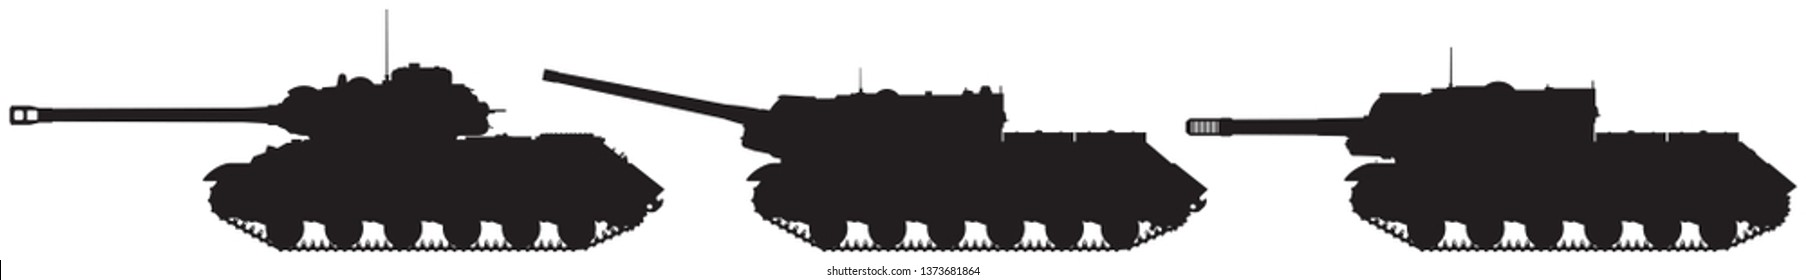 Tank and tank destroyers vector silhouettes, WW2 Soviet heavy tank IS-2 and self-propelled artillery units anti-tank assault guns ISU-122 and ISU-152 from Joseph Stalin IS tank series